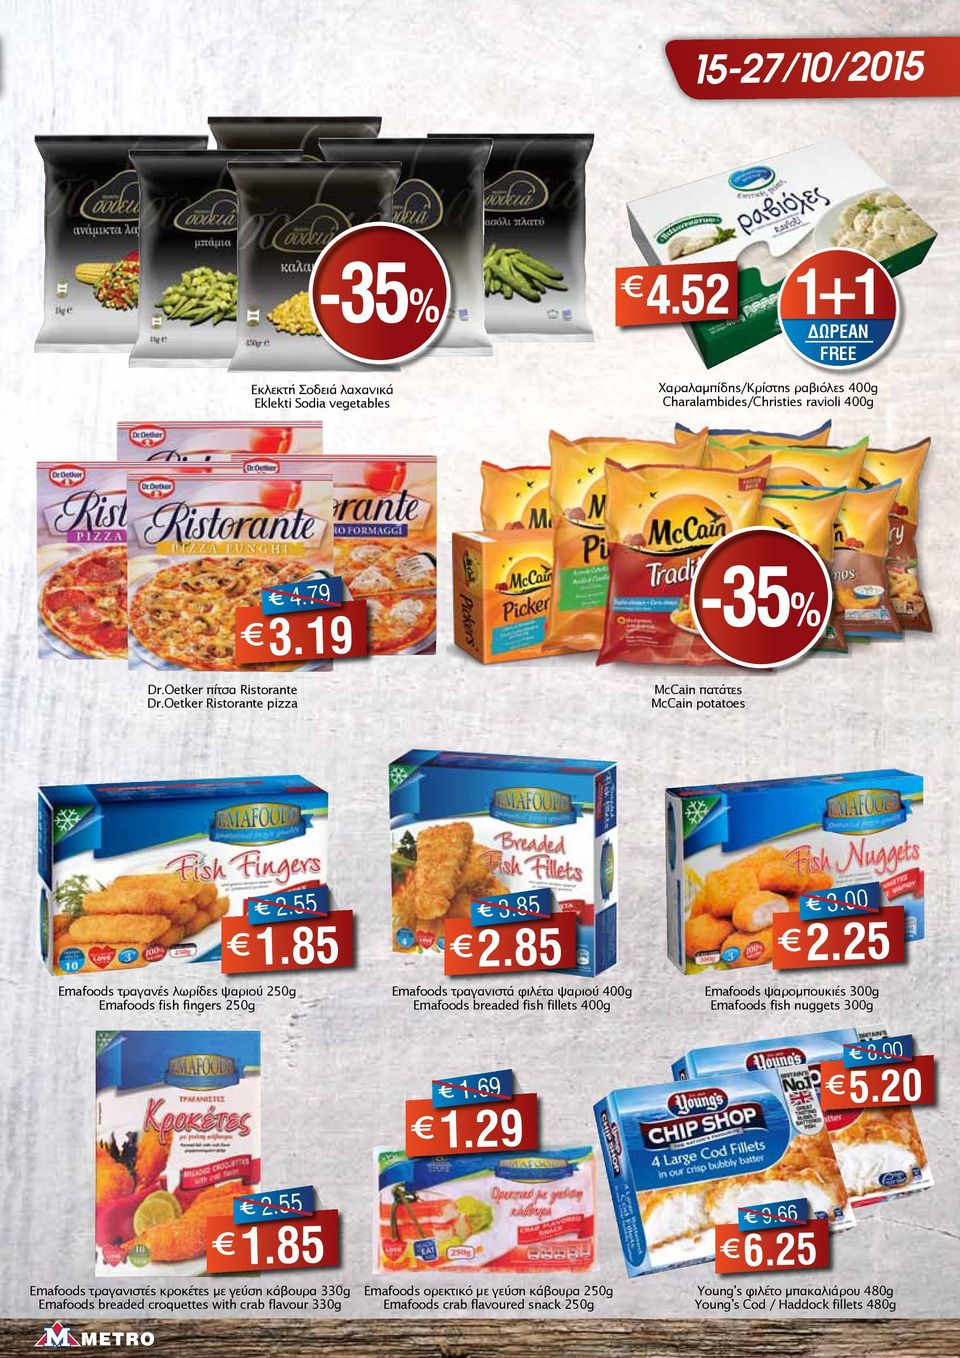 85 Emafoods τραγανιστά φιλέτα ψαριού 400g Emafoods breaded fish fillets 400g 3.00 2.25 Emafoods ψαρομπουκιές 300g Emafoods fish nuggets 300g 1.69 1.29 8.00 5.20 2.55 1.